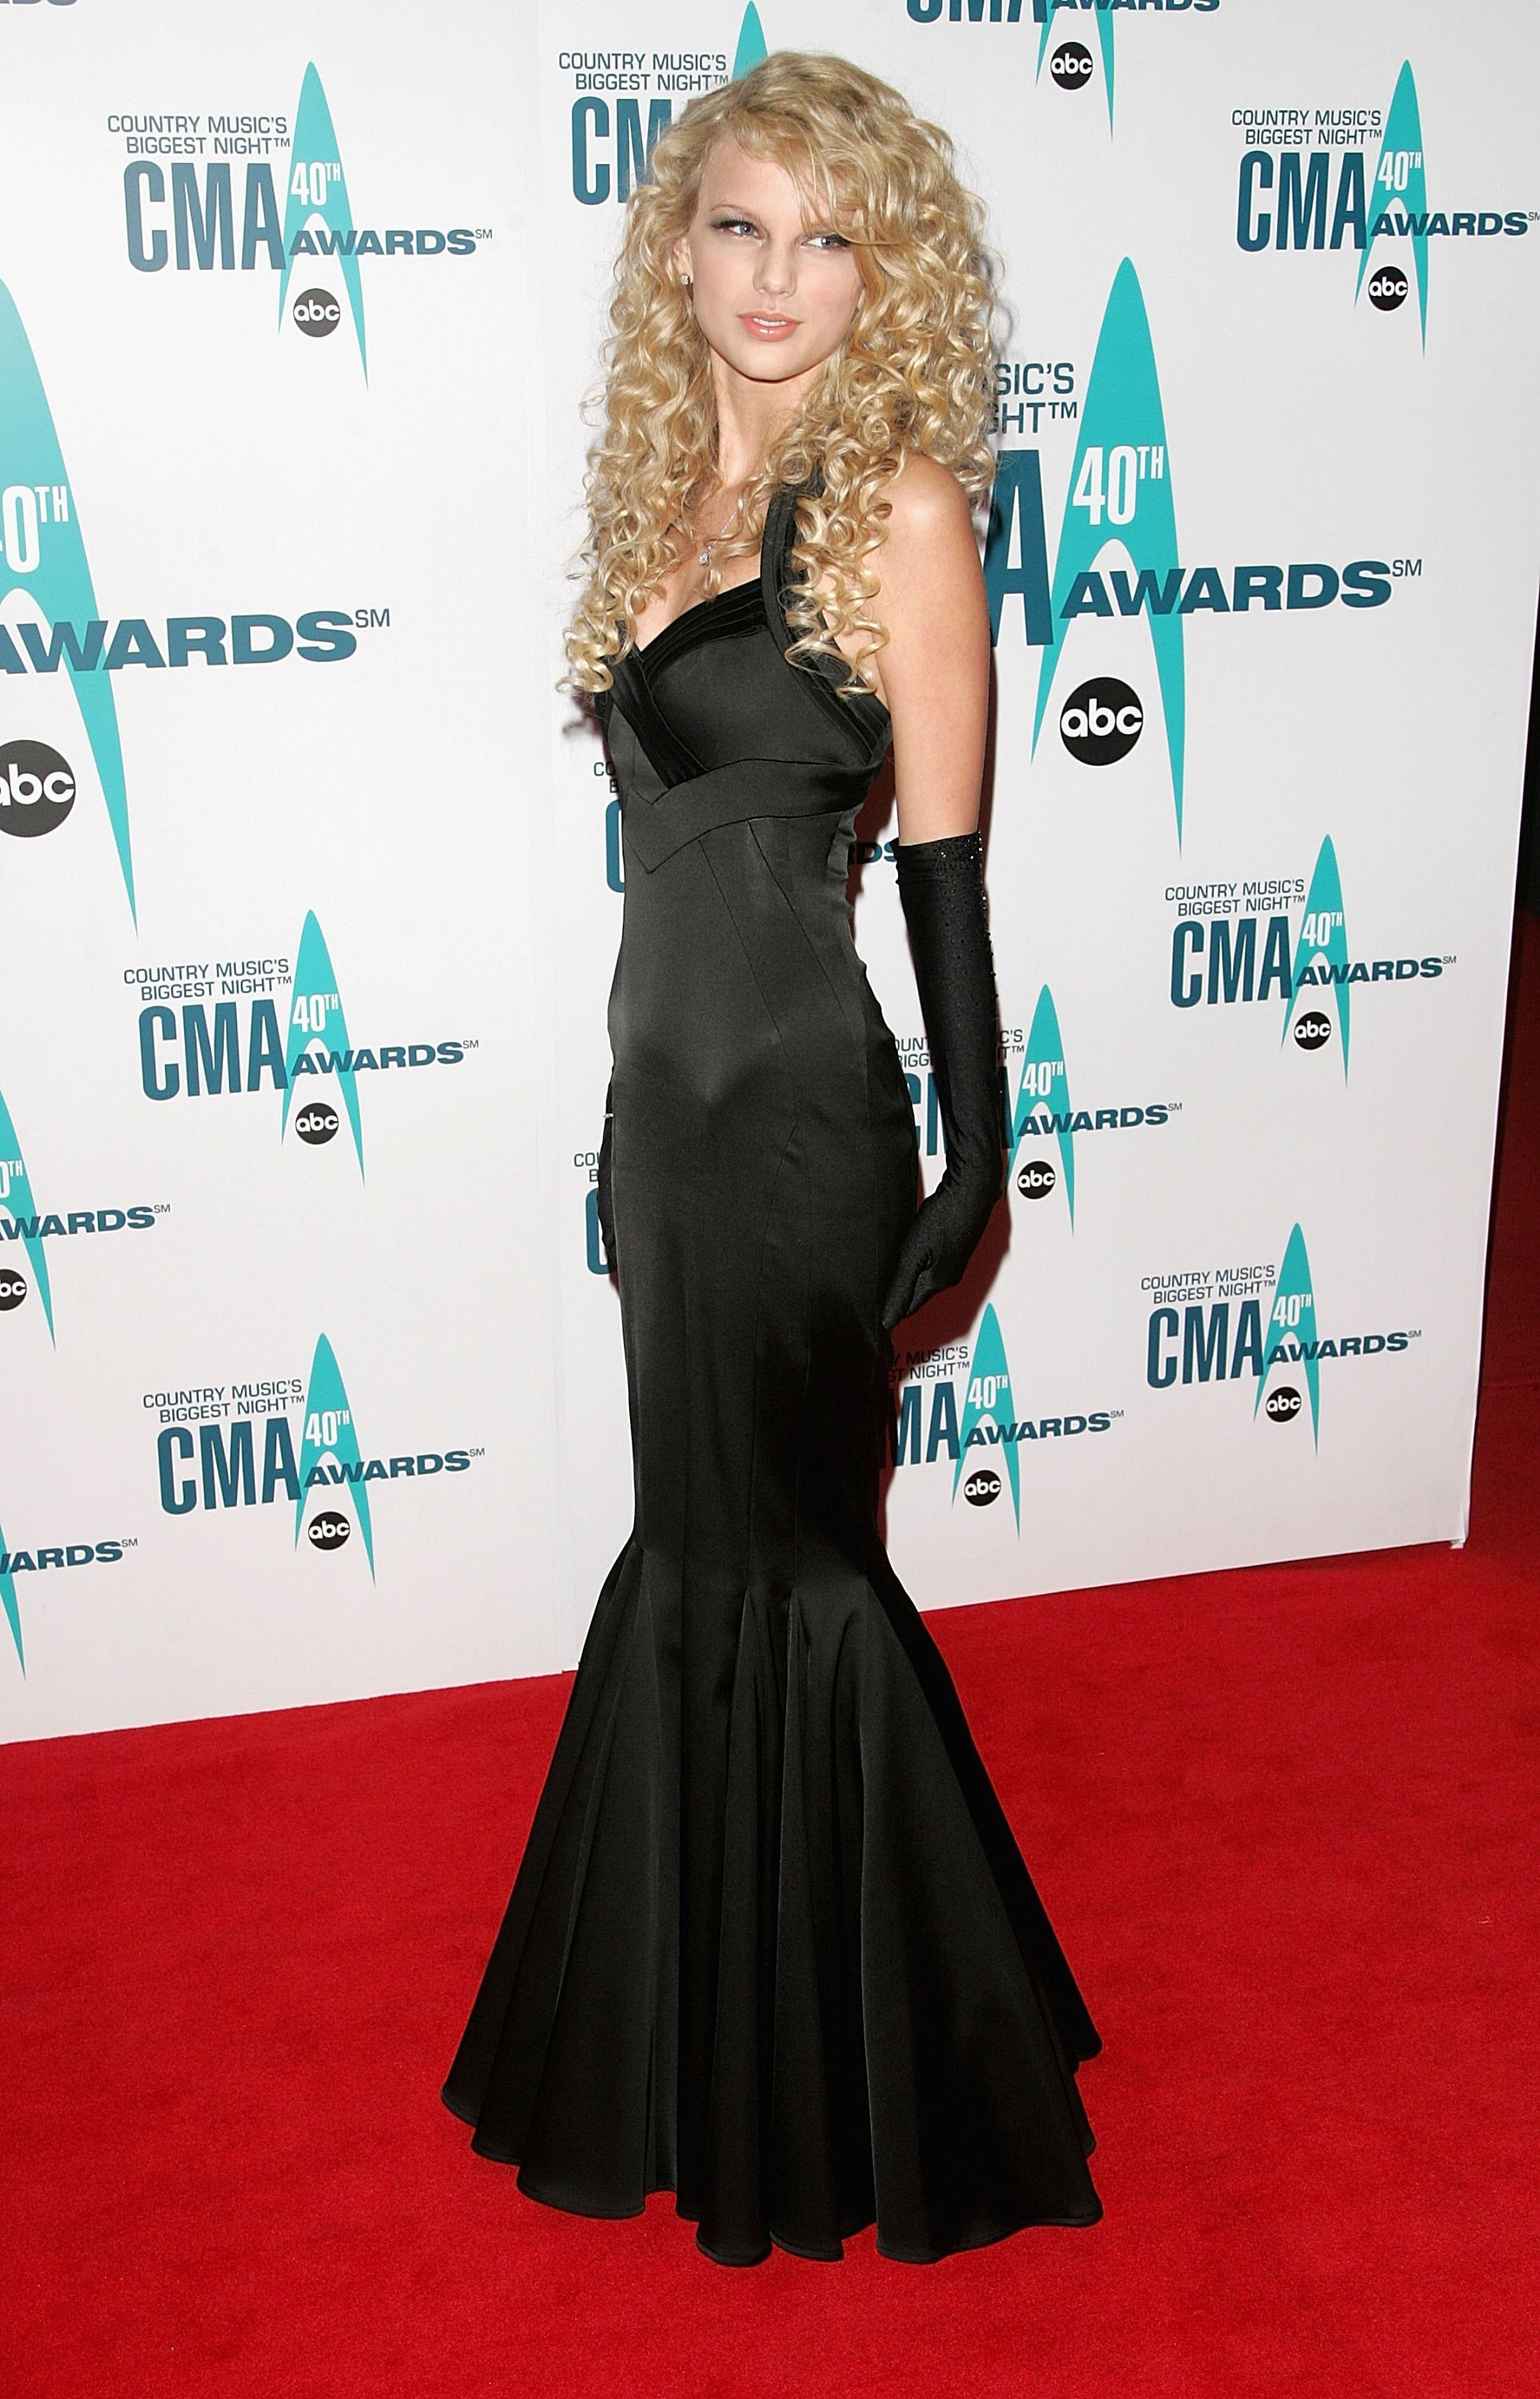 Taylor Swift attends the 40th Annual CMA Awards at the Gaylord Entertainment Center in Nashville on Nov. 6, 2006.